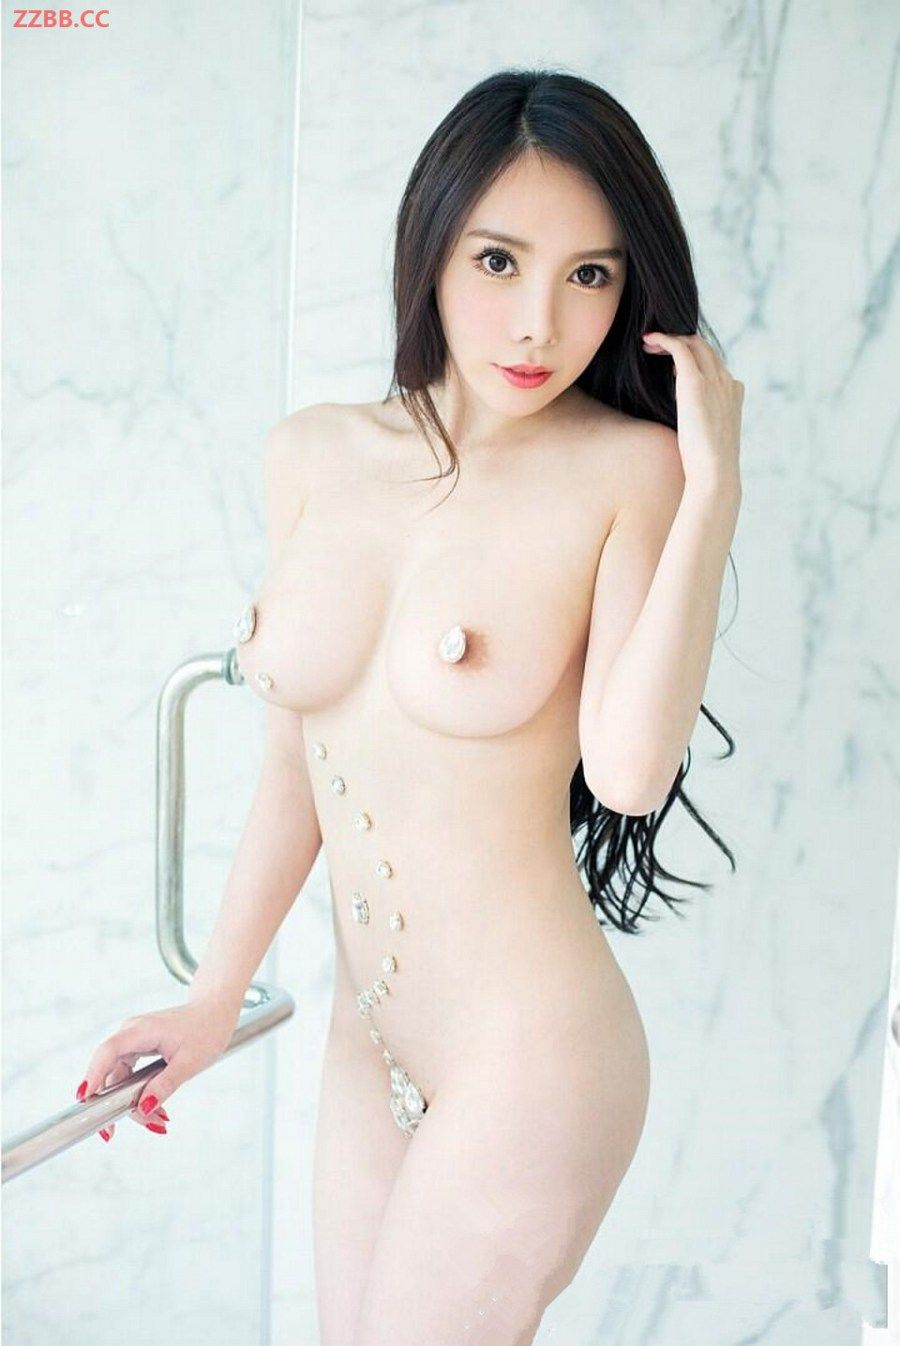 china-boy-hot-fuck-china-girl-picture